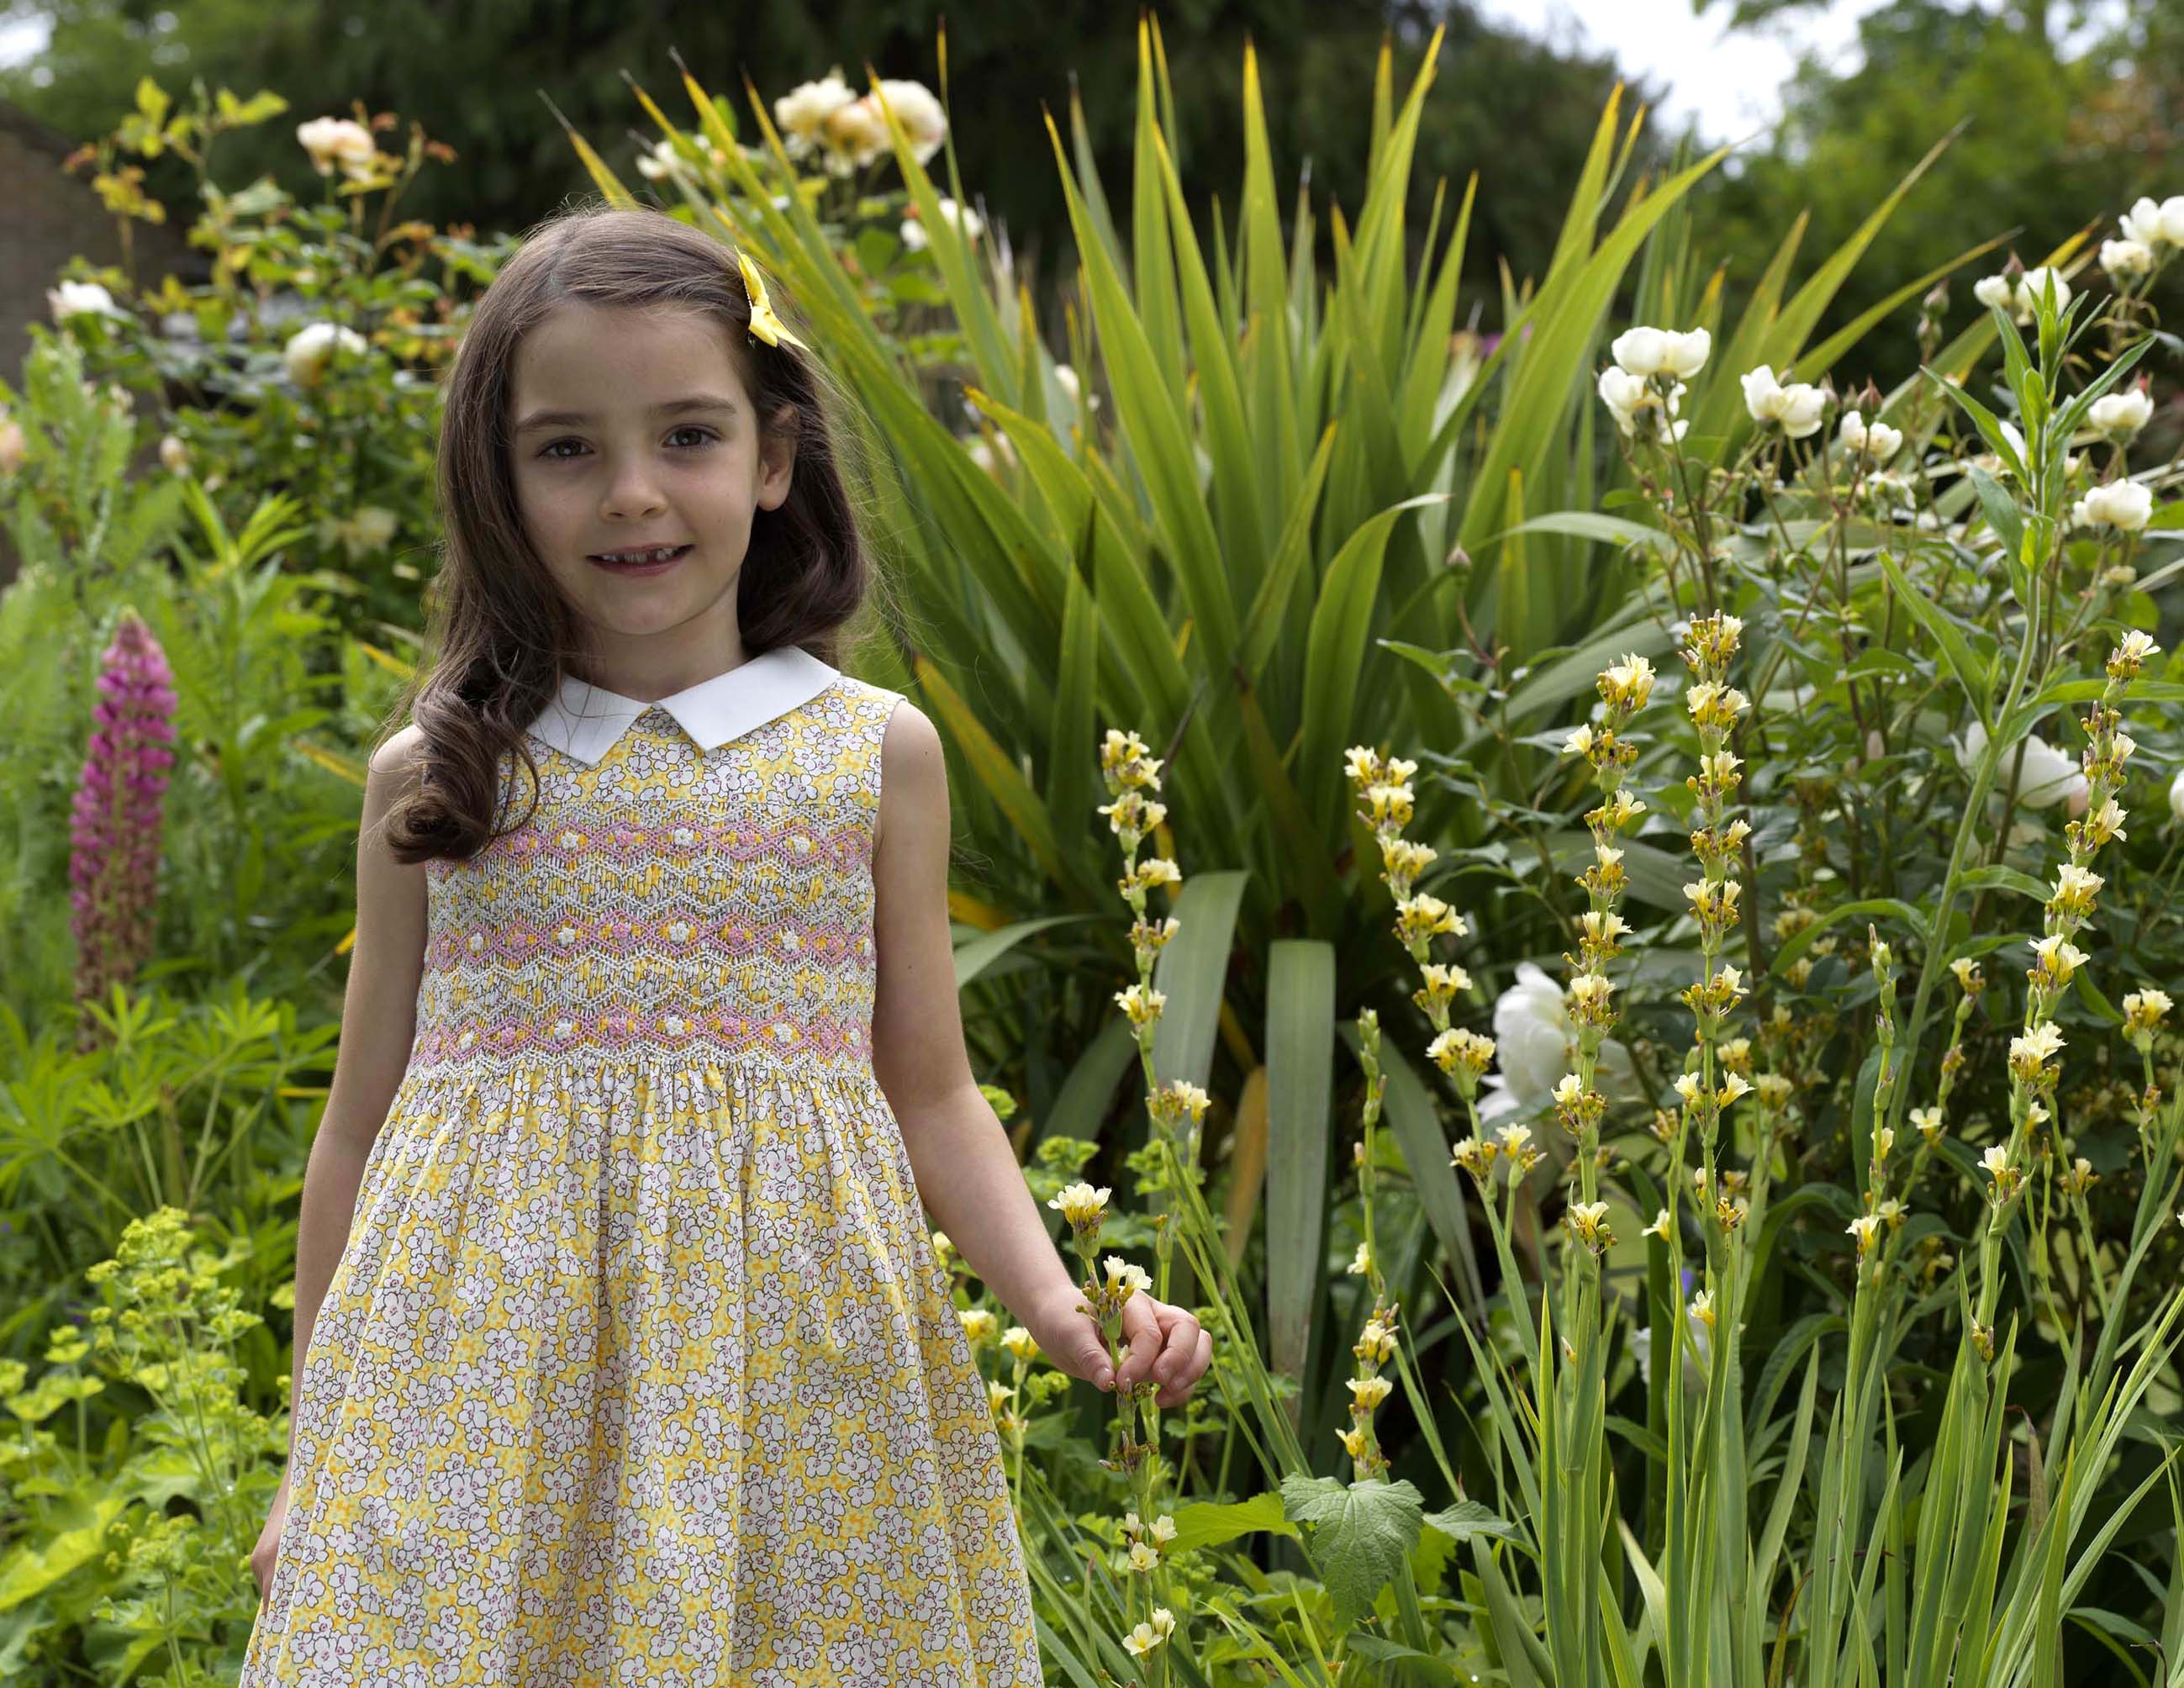 Young girl in yellow floral dress standing in floral garden